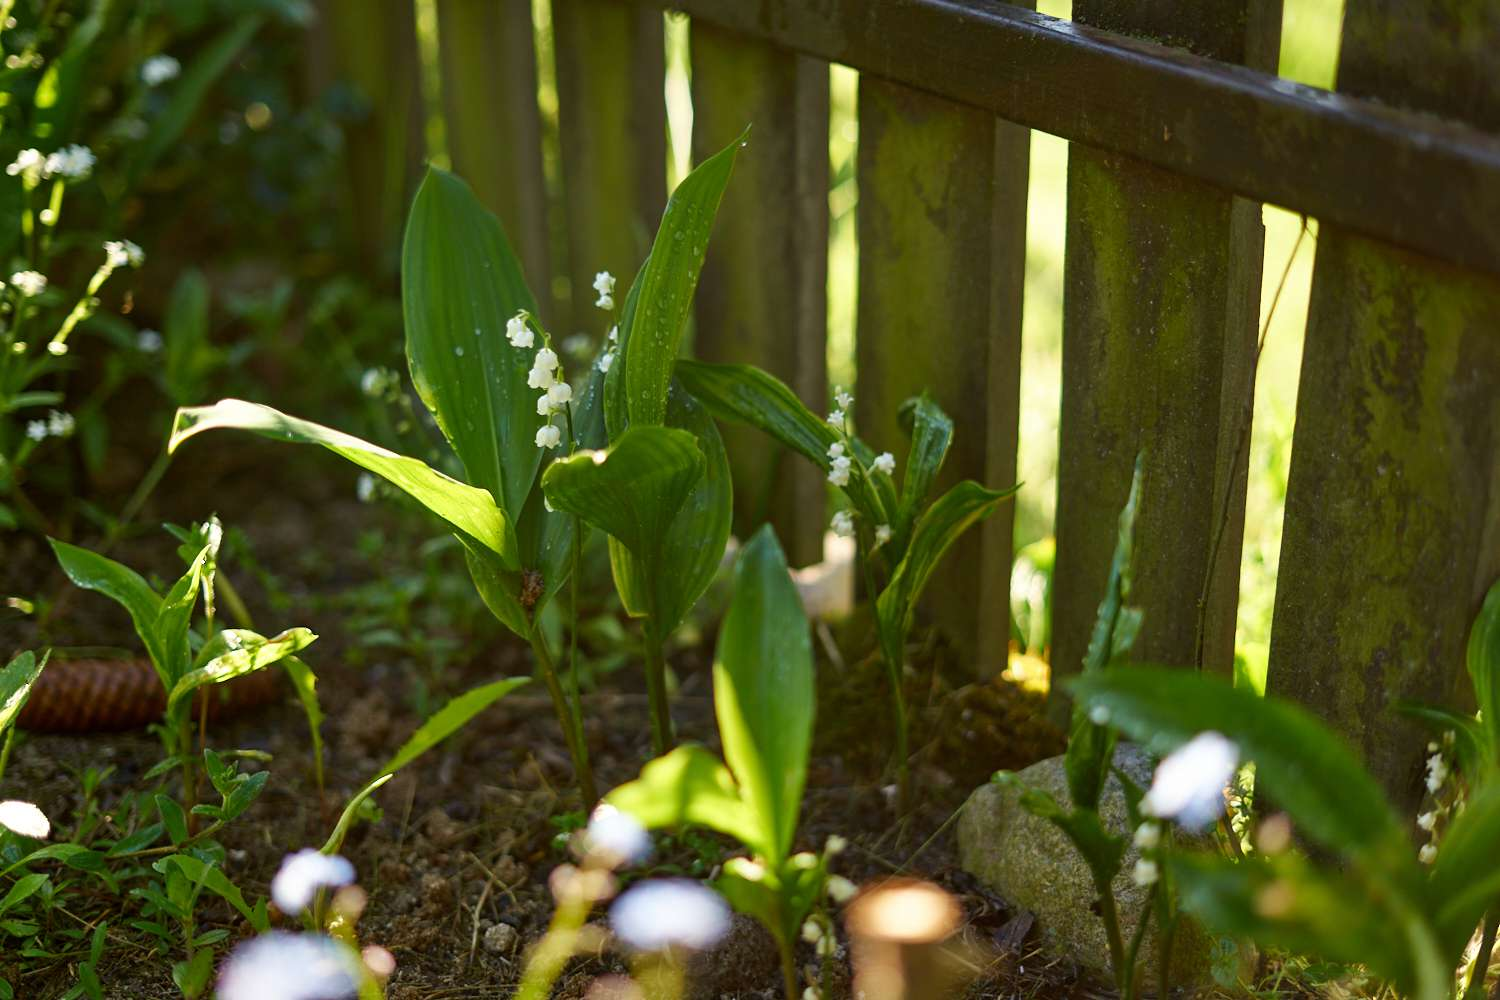 lily of the valley plant grows near wooden fence outside